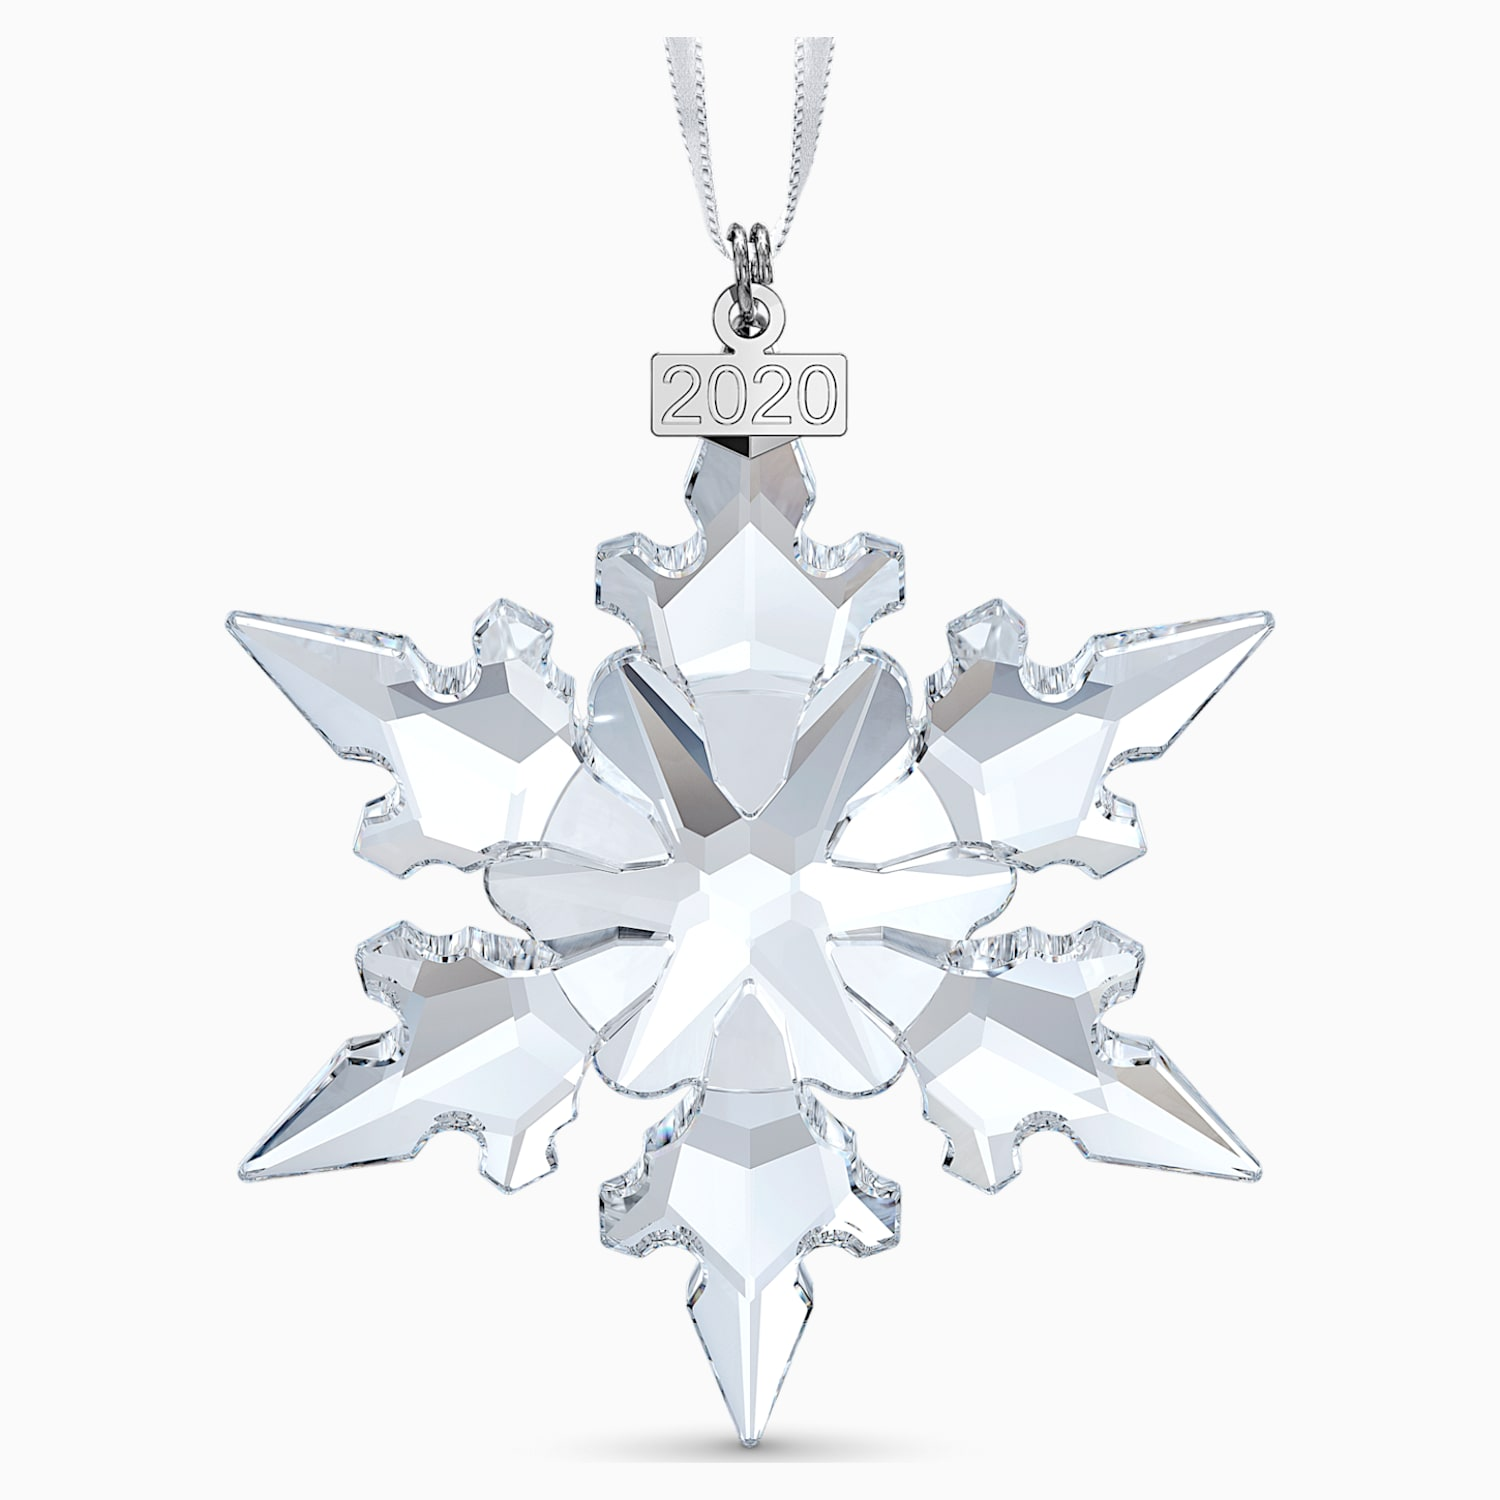 Annual Edition Ornament 2020 | Swarovski.com